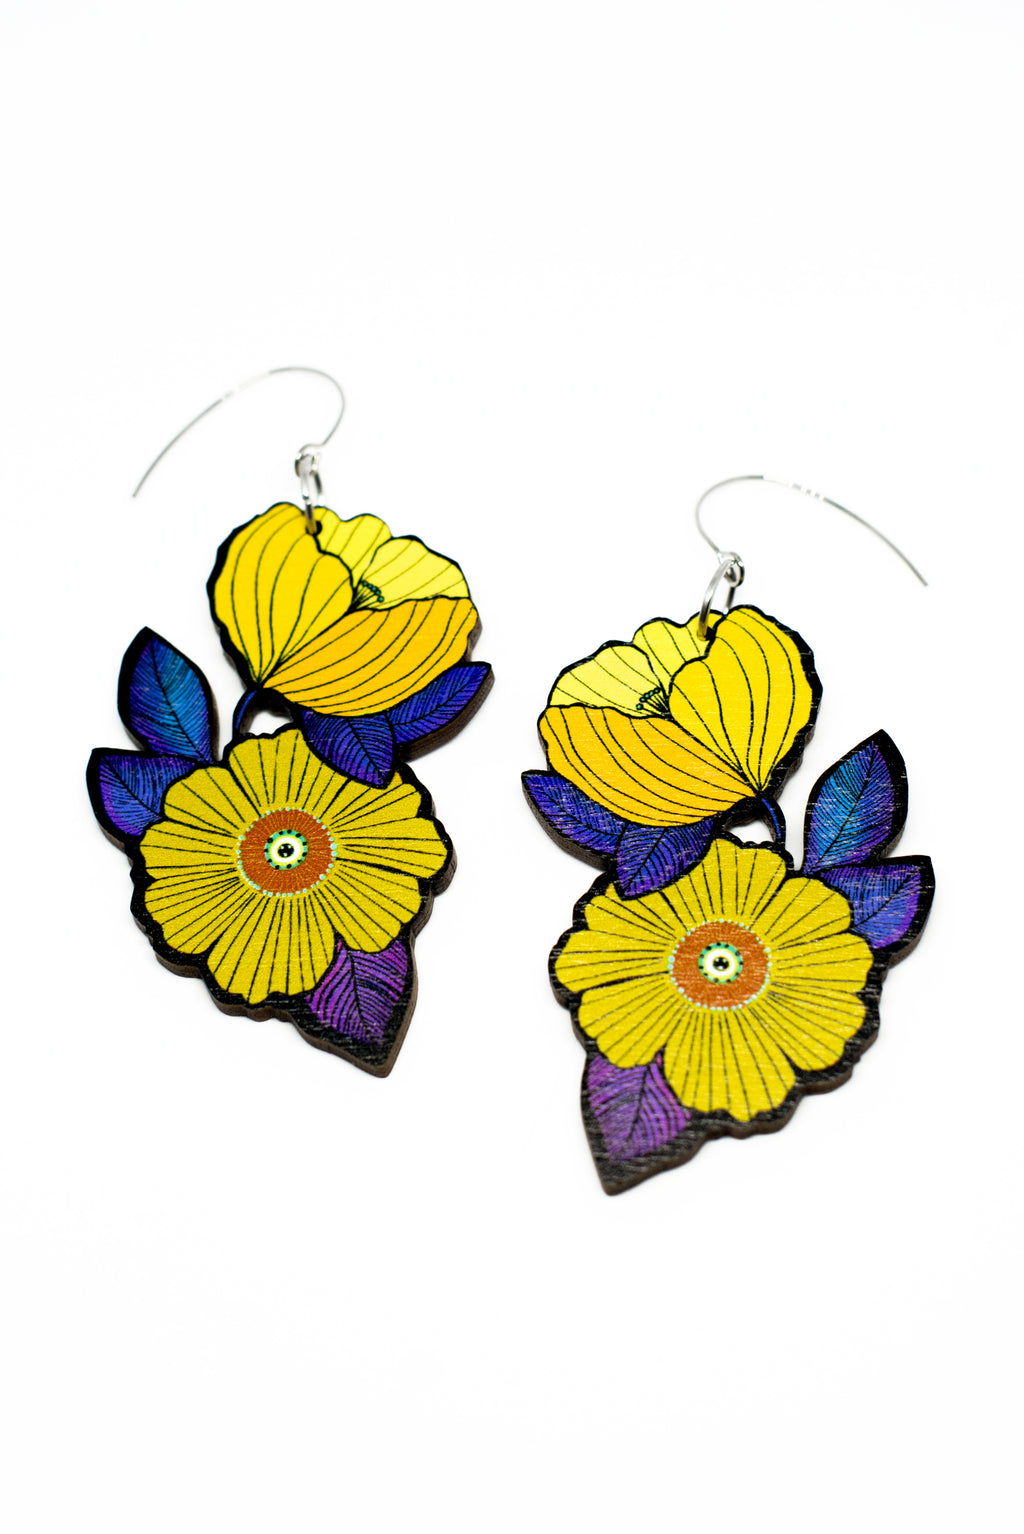 Forget Me Not Earrings, Lemon Yellow/Violet, Wood